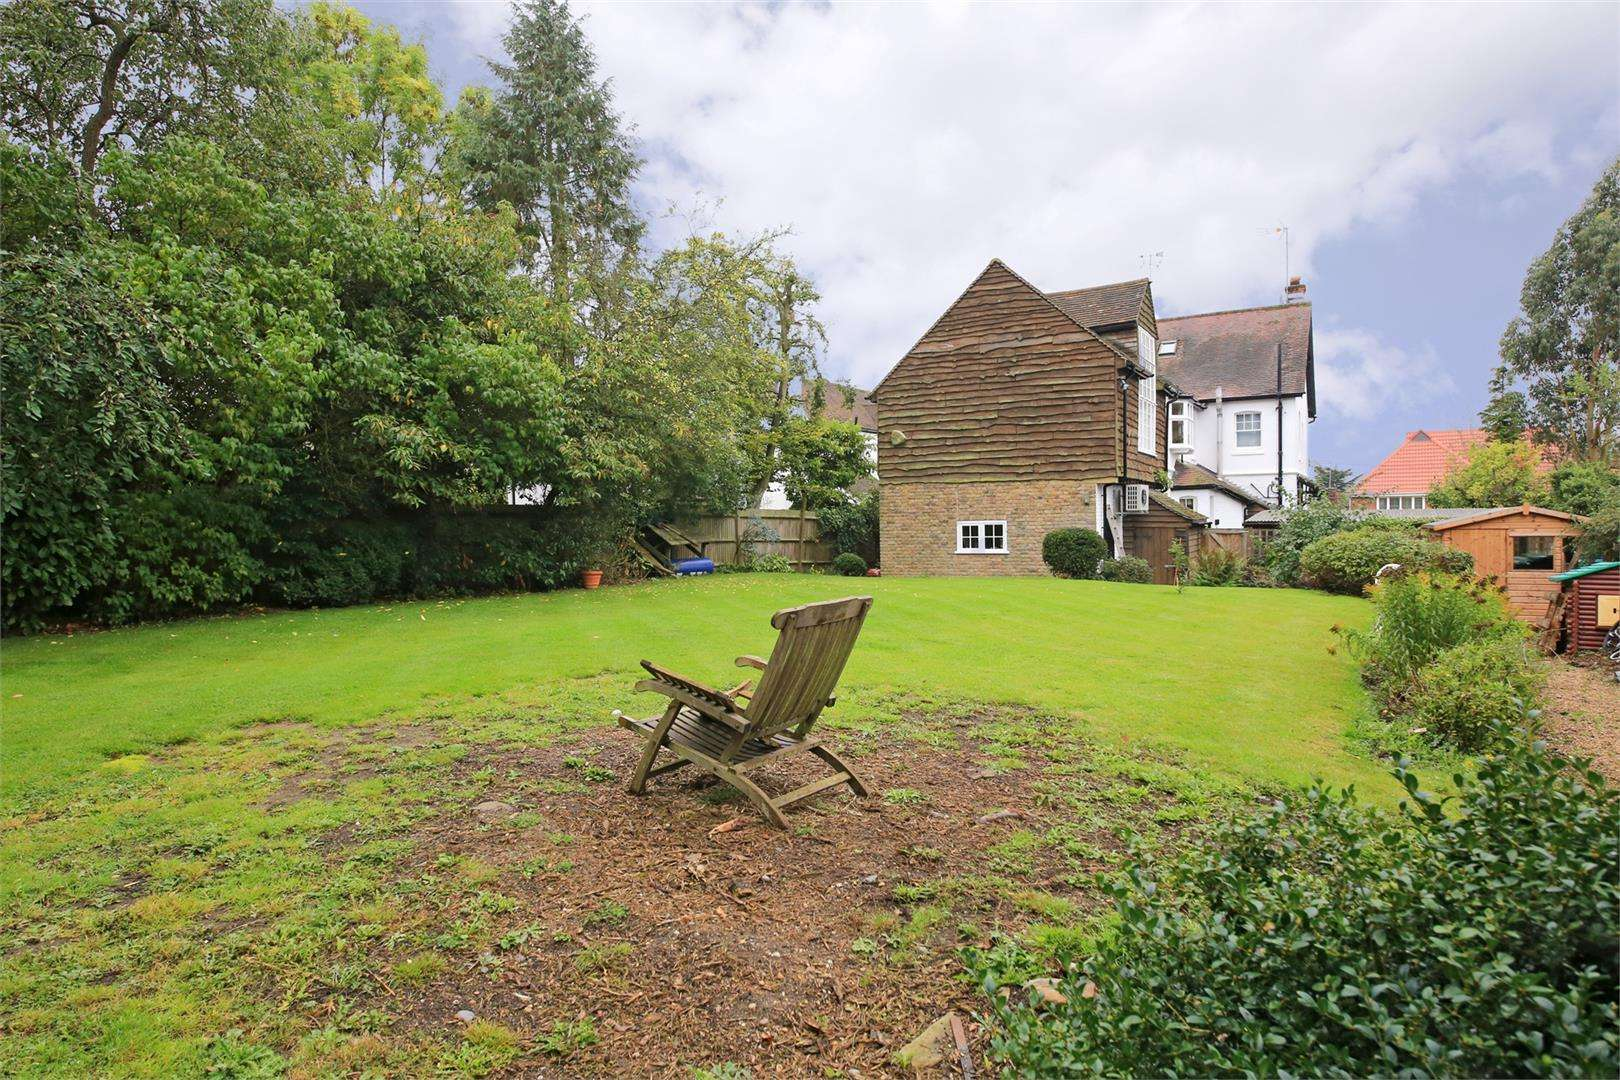 5 bed to rent - (Property Image 18)